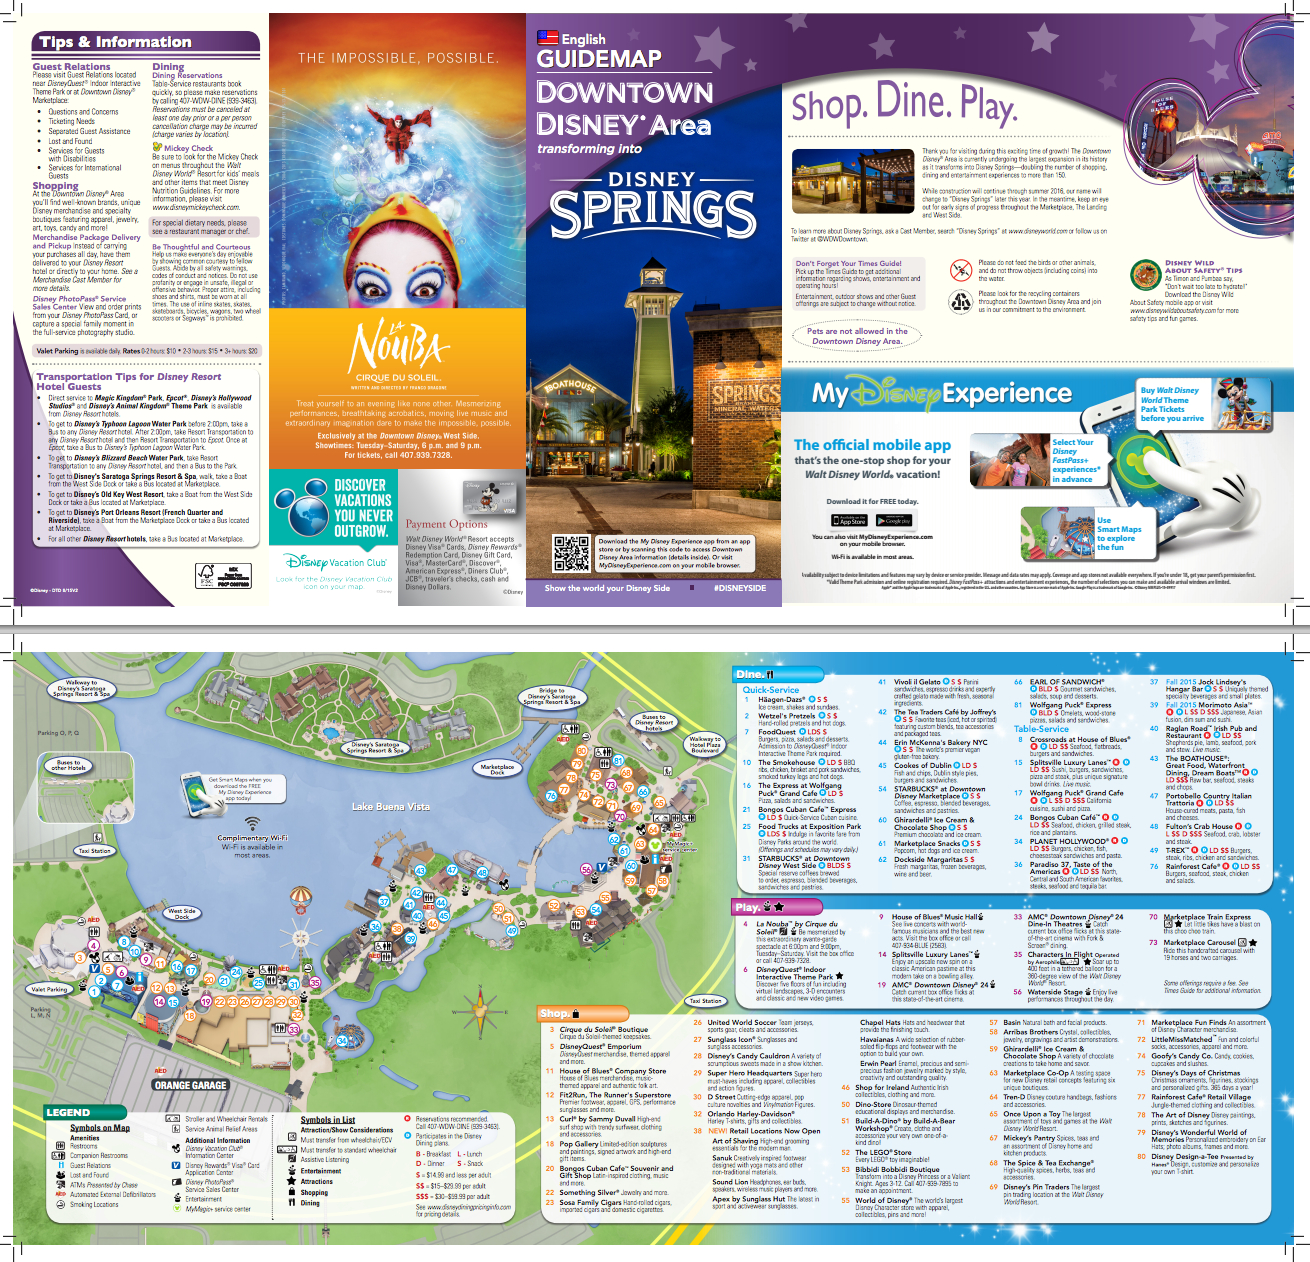 New Map For Downtown Disney/disney Springs (Pdf) | Disney Springs - Map Of Disney Springs Florida